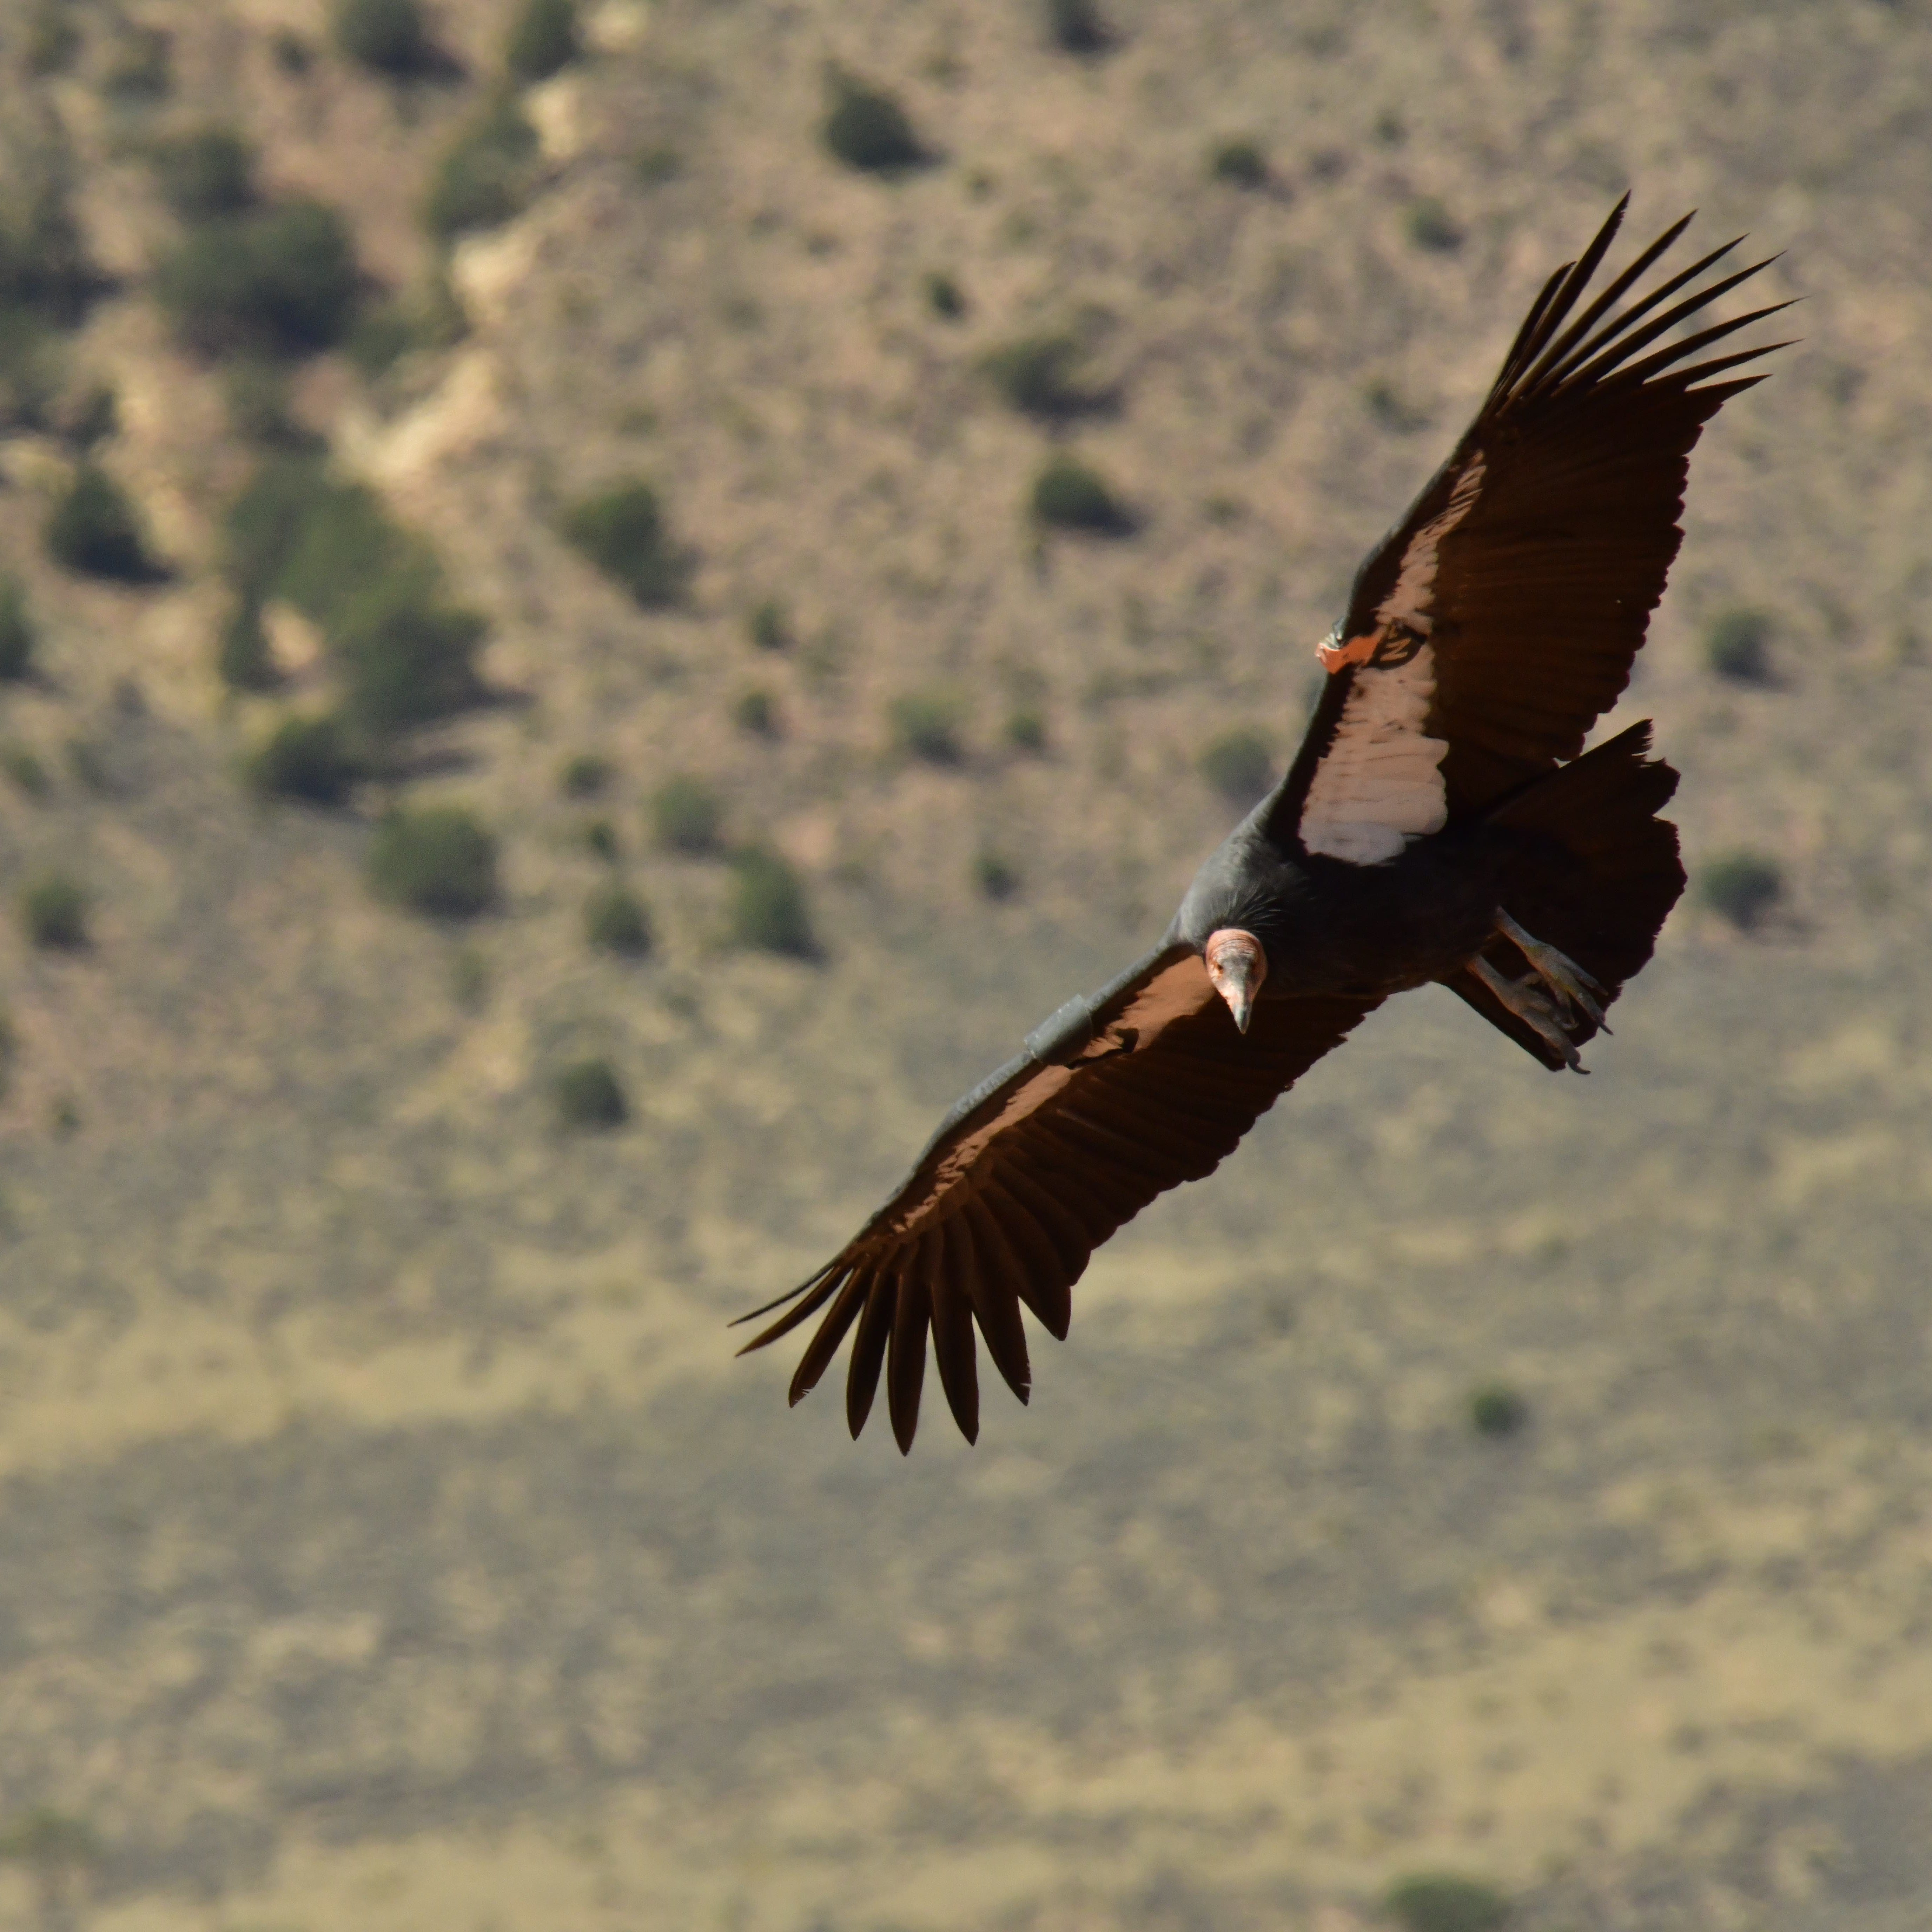 As California condors struggle in the wild, more are released in northern Arizona